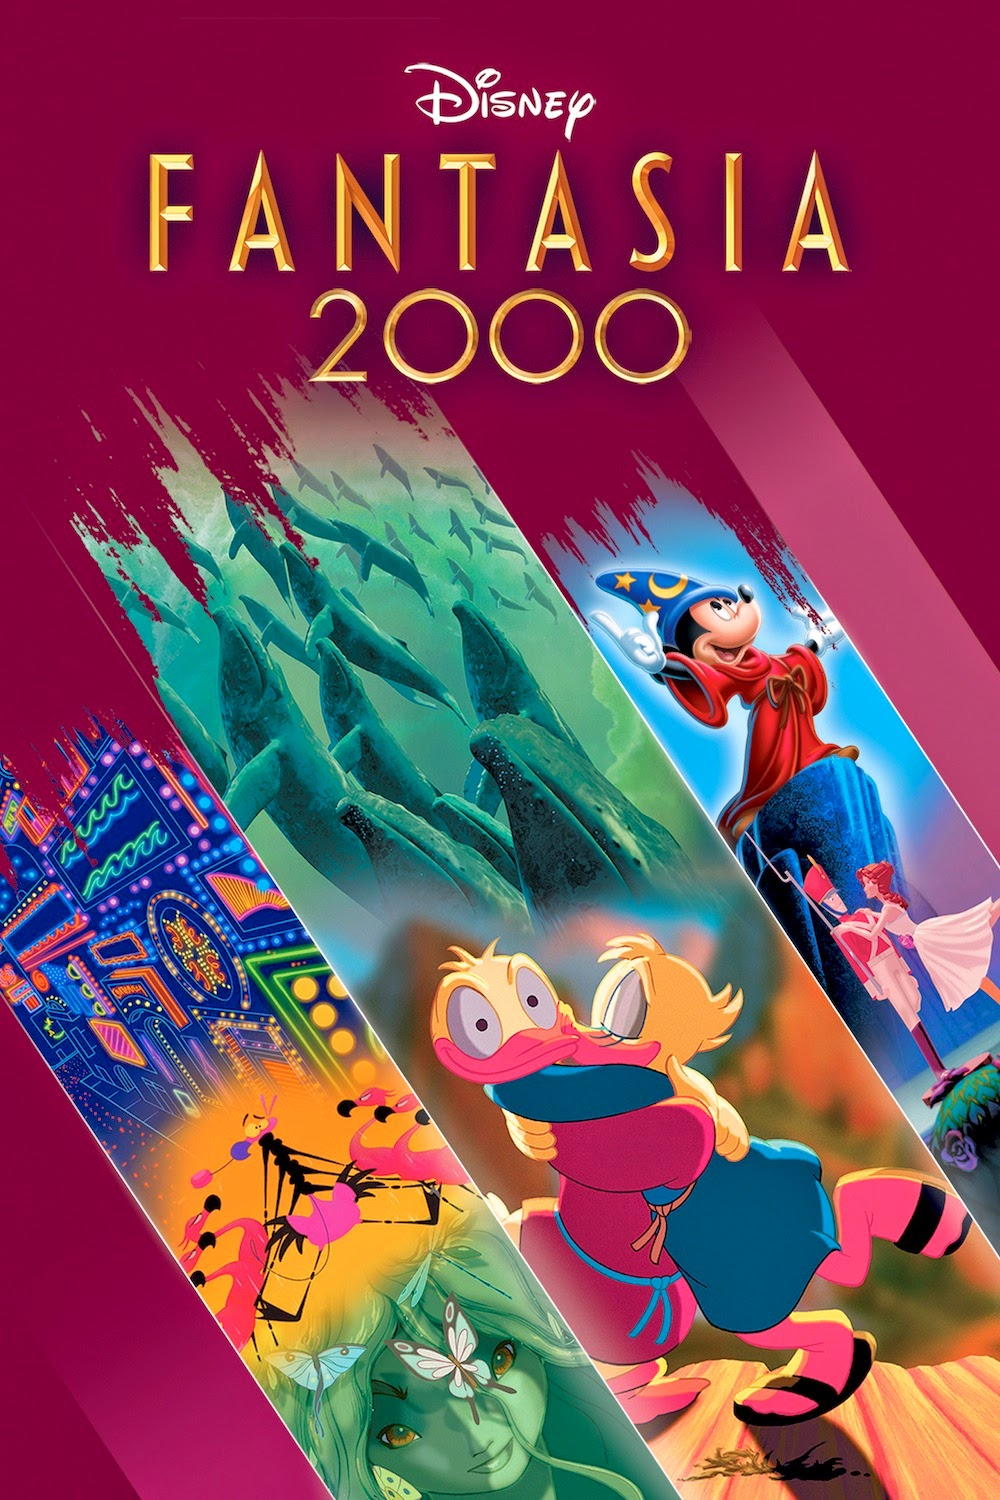 Fantasia-2000-Disney-Movie